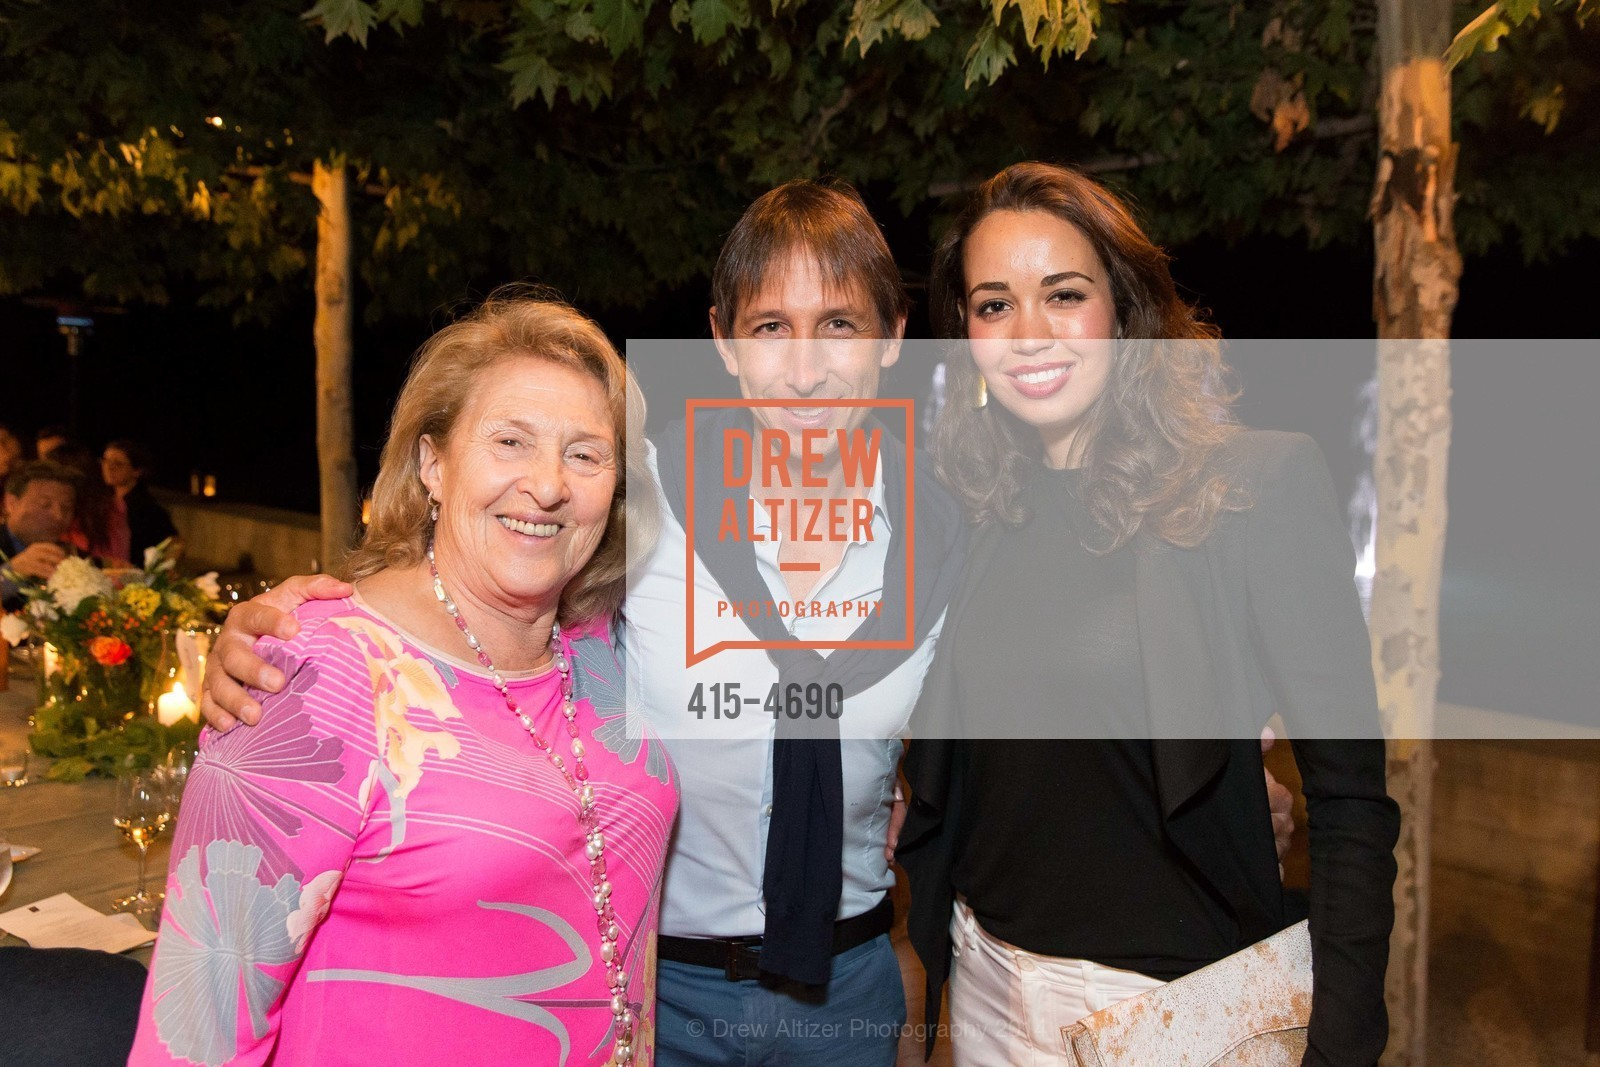 Maria Shustorovich, Gianluca Macheda, Nadine Sierra, Photo #415-4690